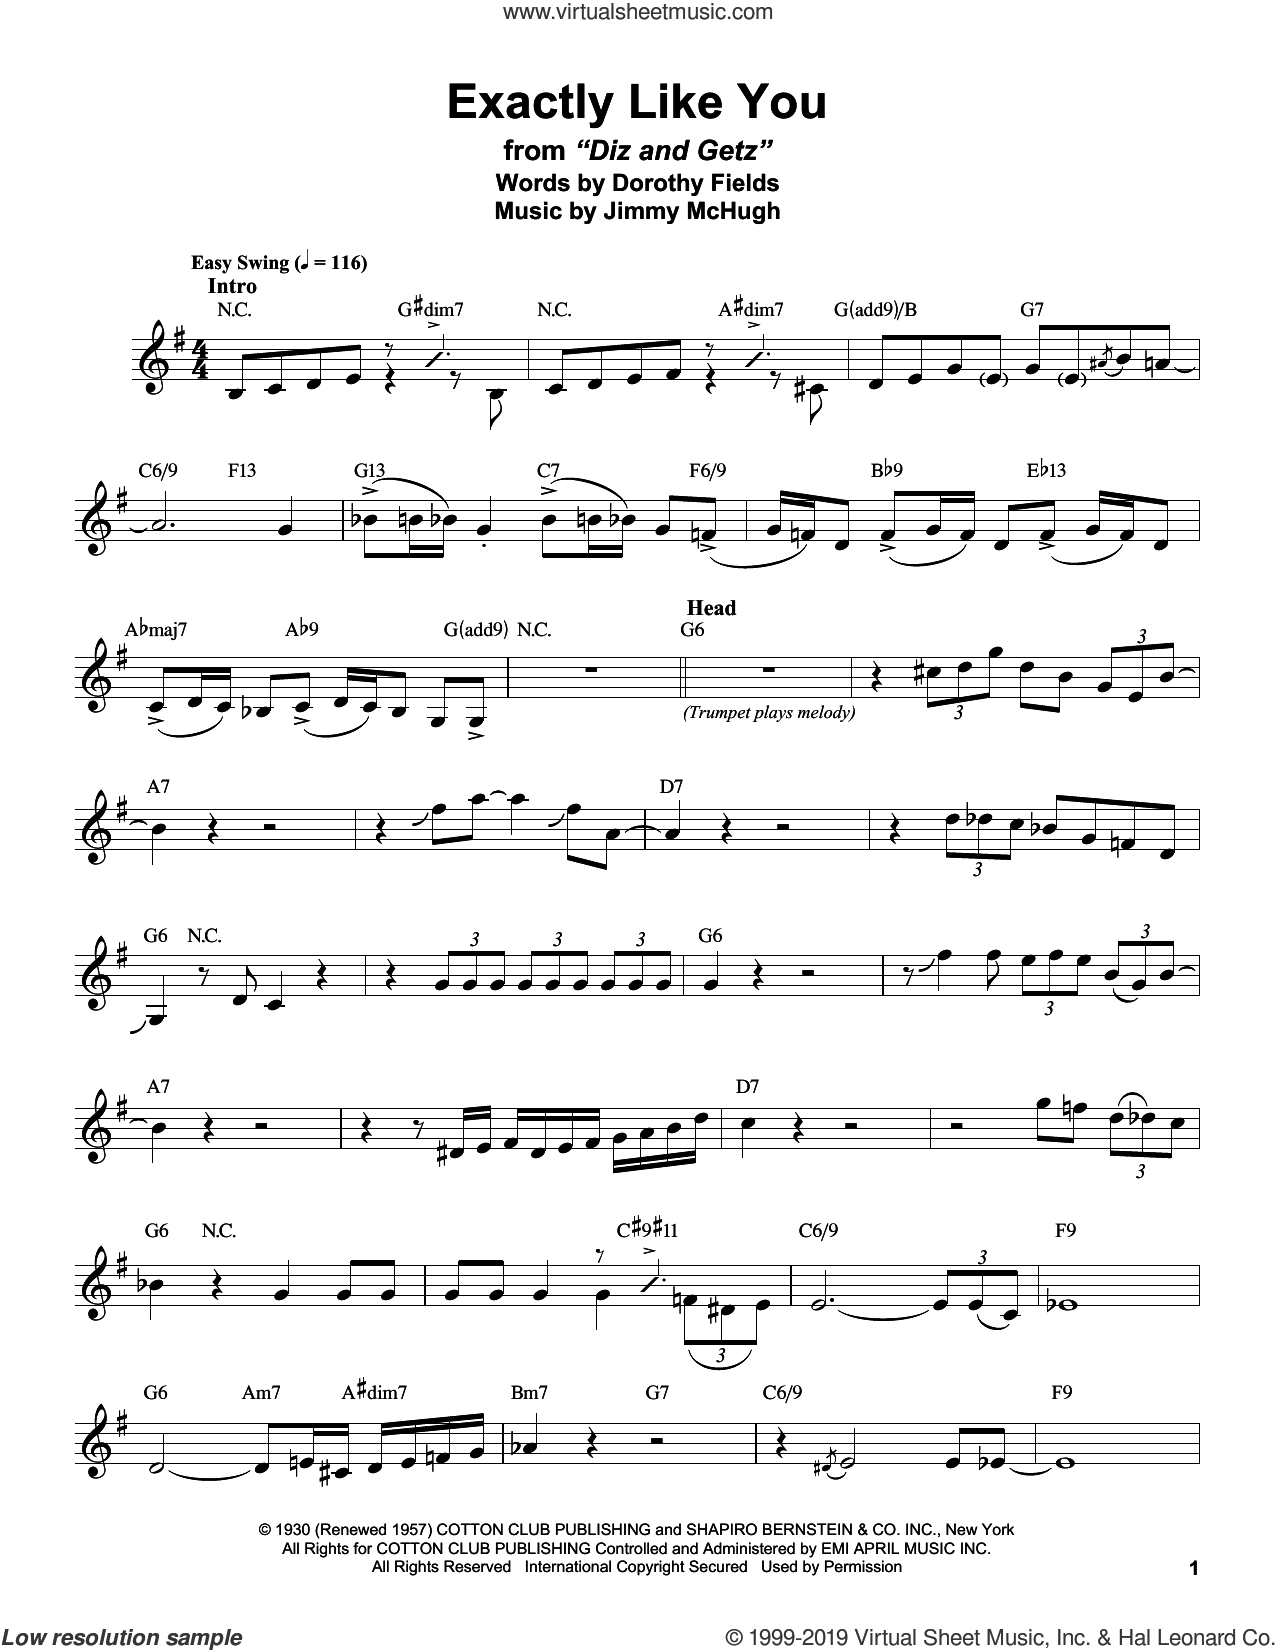 Exactly Like You sheet music for alto saxophone (transcription) by Stan Getz, Dorothy Fields and Jimmy McHugh, intermediate skill level